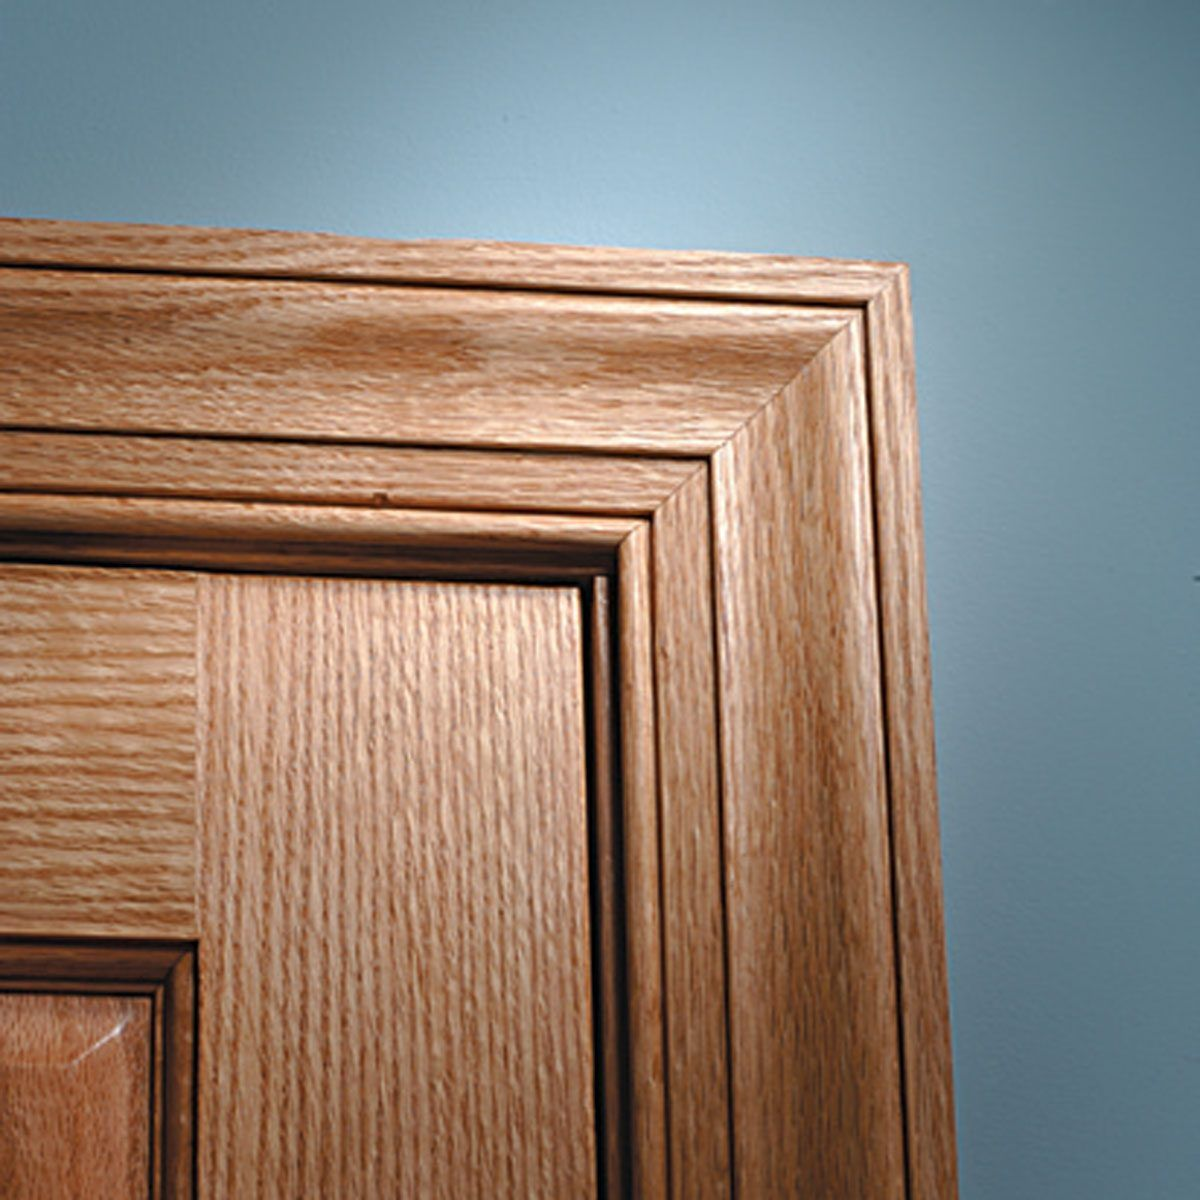 No Cutting Corners: Tips for Tight Miters and Coped Joints